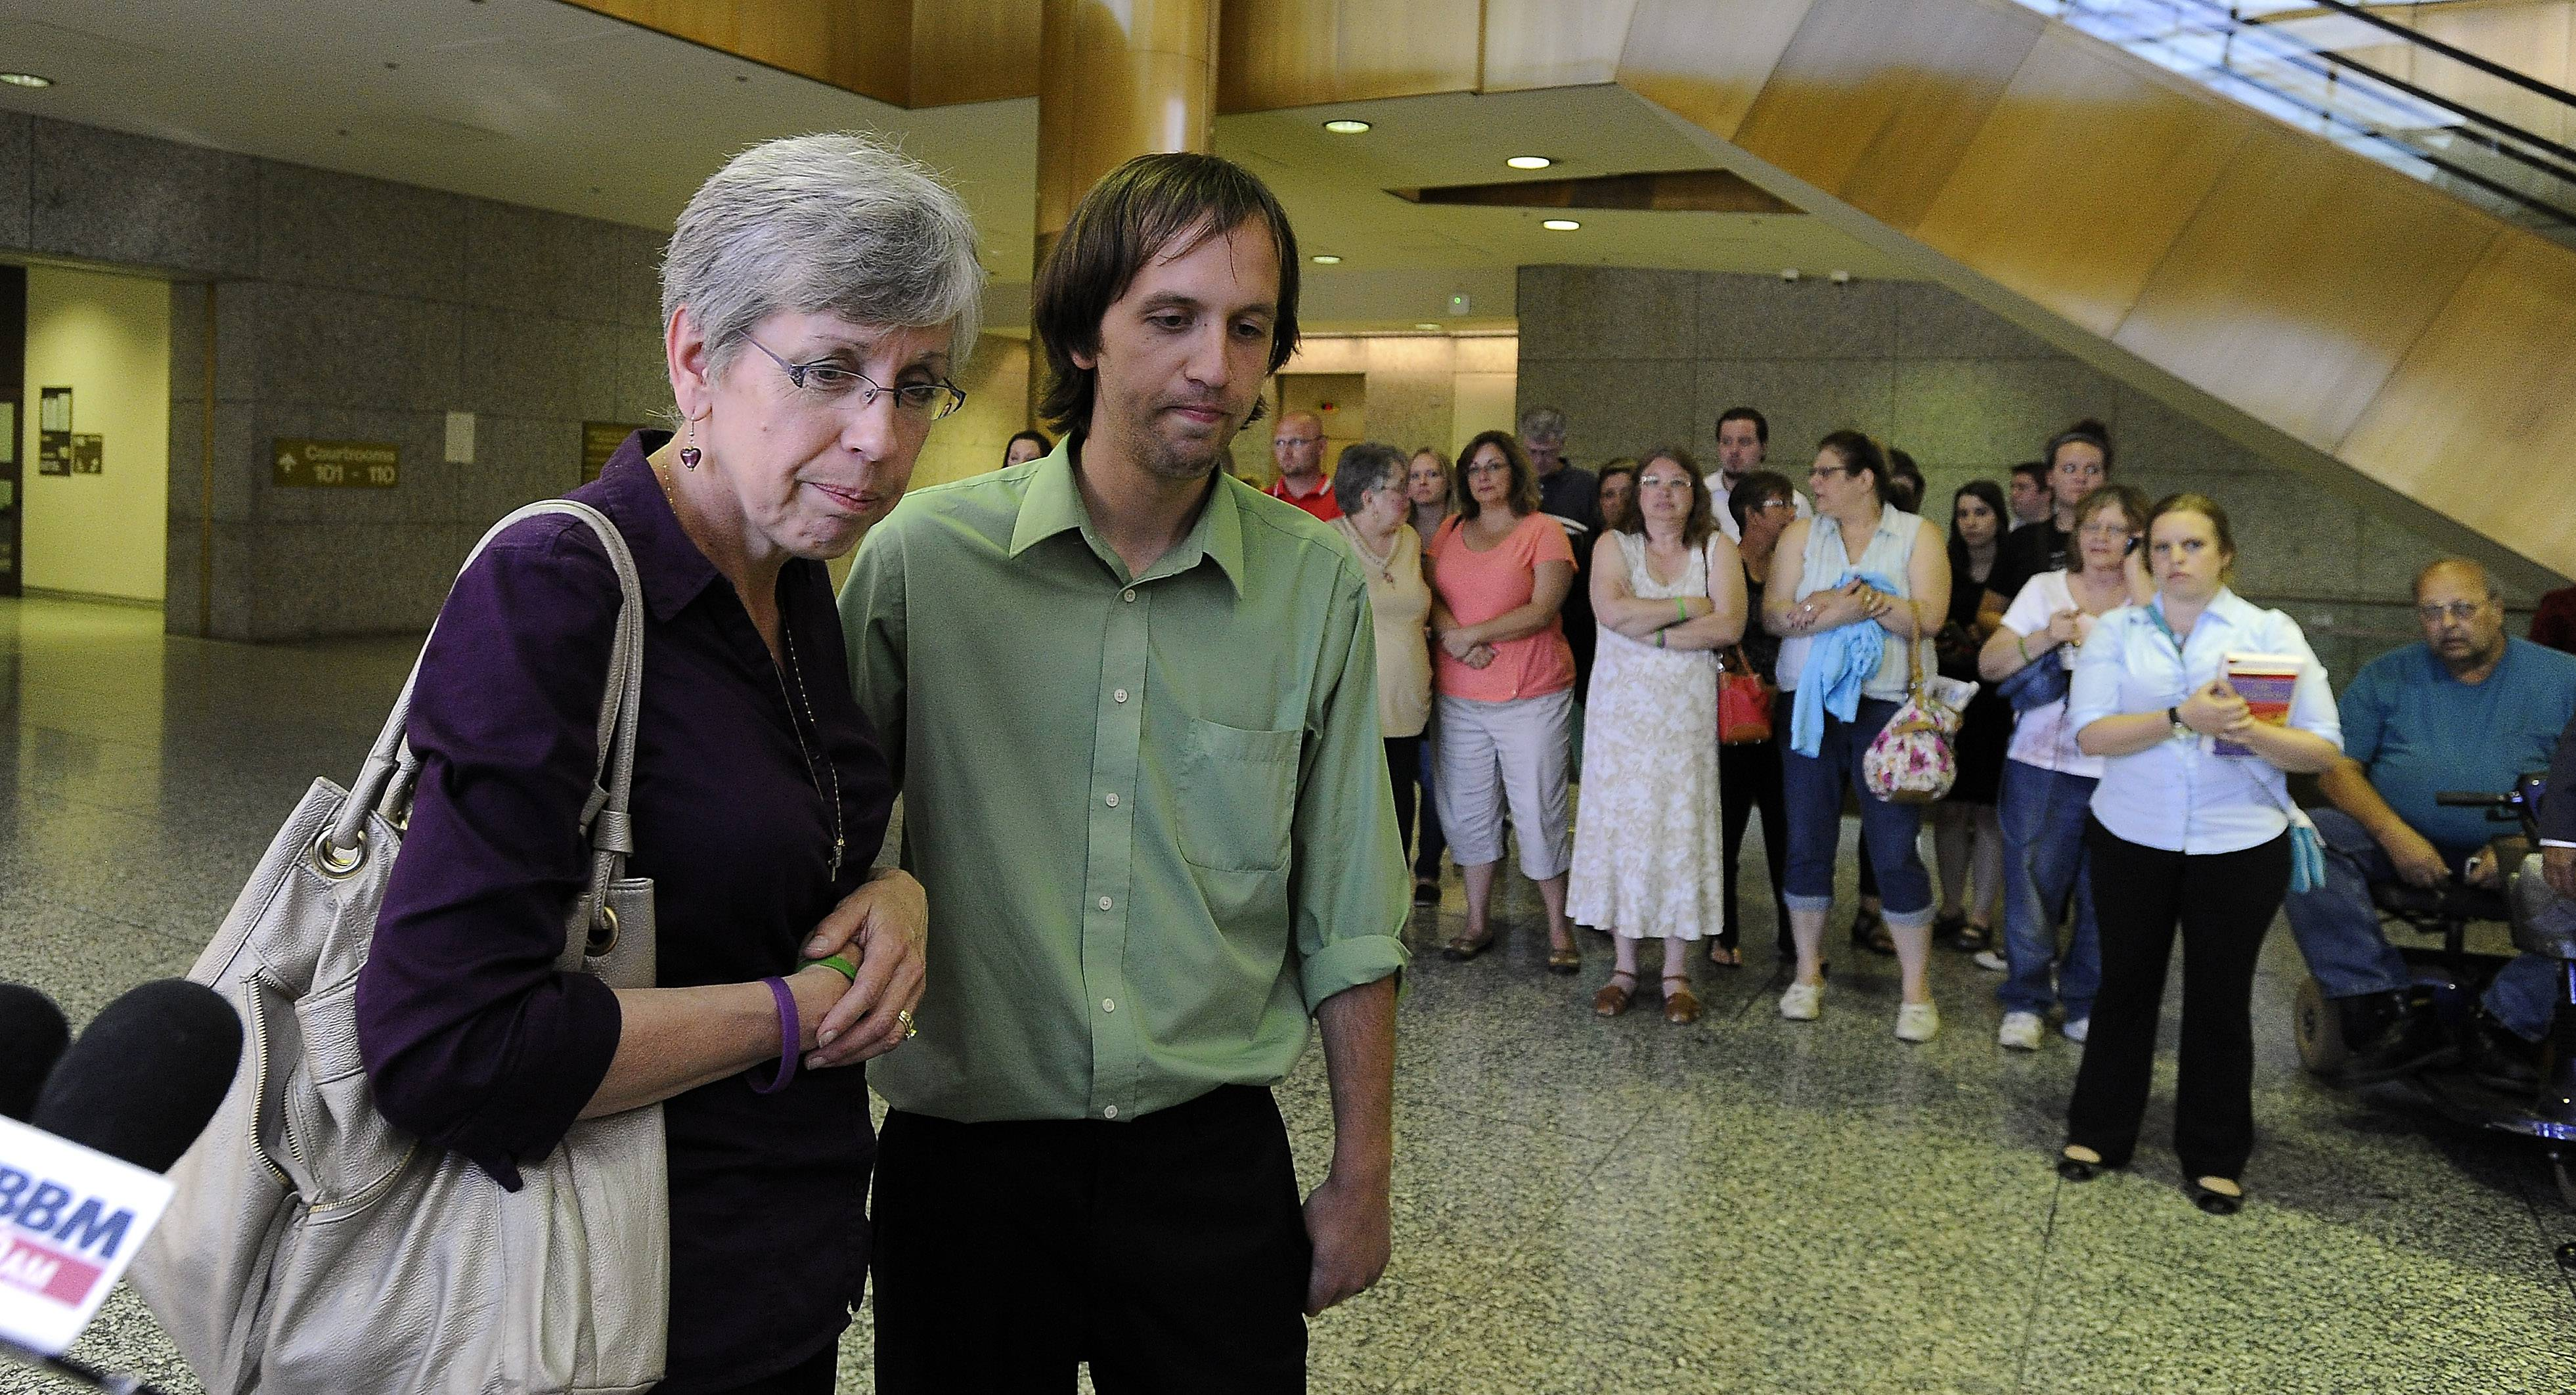 An emotional Jeff Engelhardt and his mother, Shelly Engelhardt, talk to reporters at the Rolling Meadows courthouse after a jury convicted D'Andre Howard of killing three members of the Engelhardt family in their Hoffman Estates home.